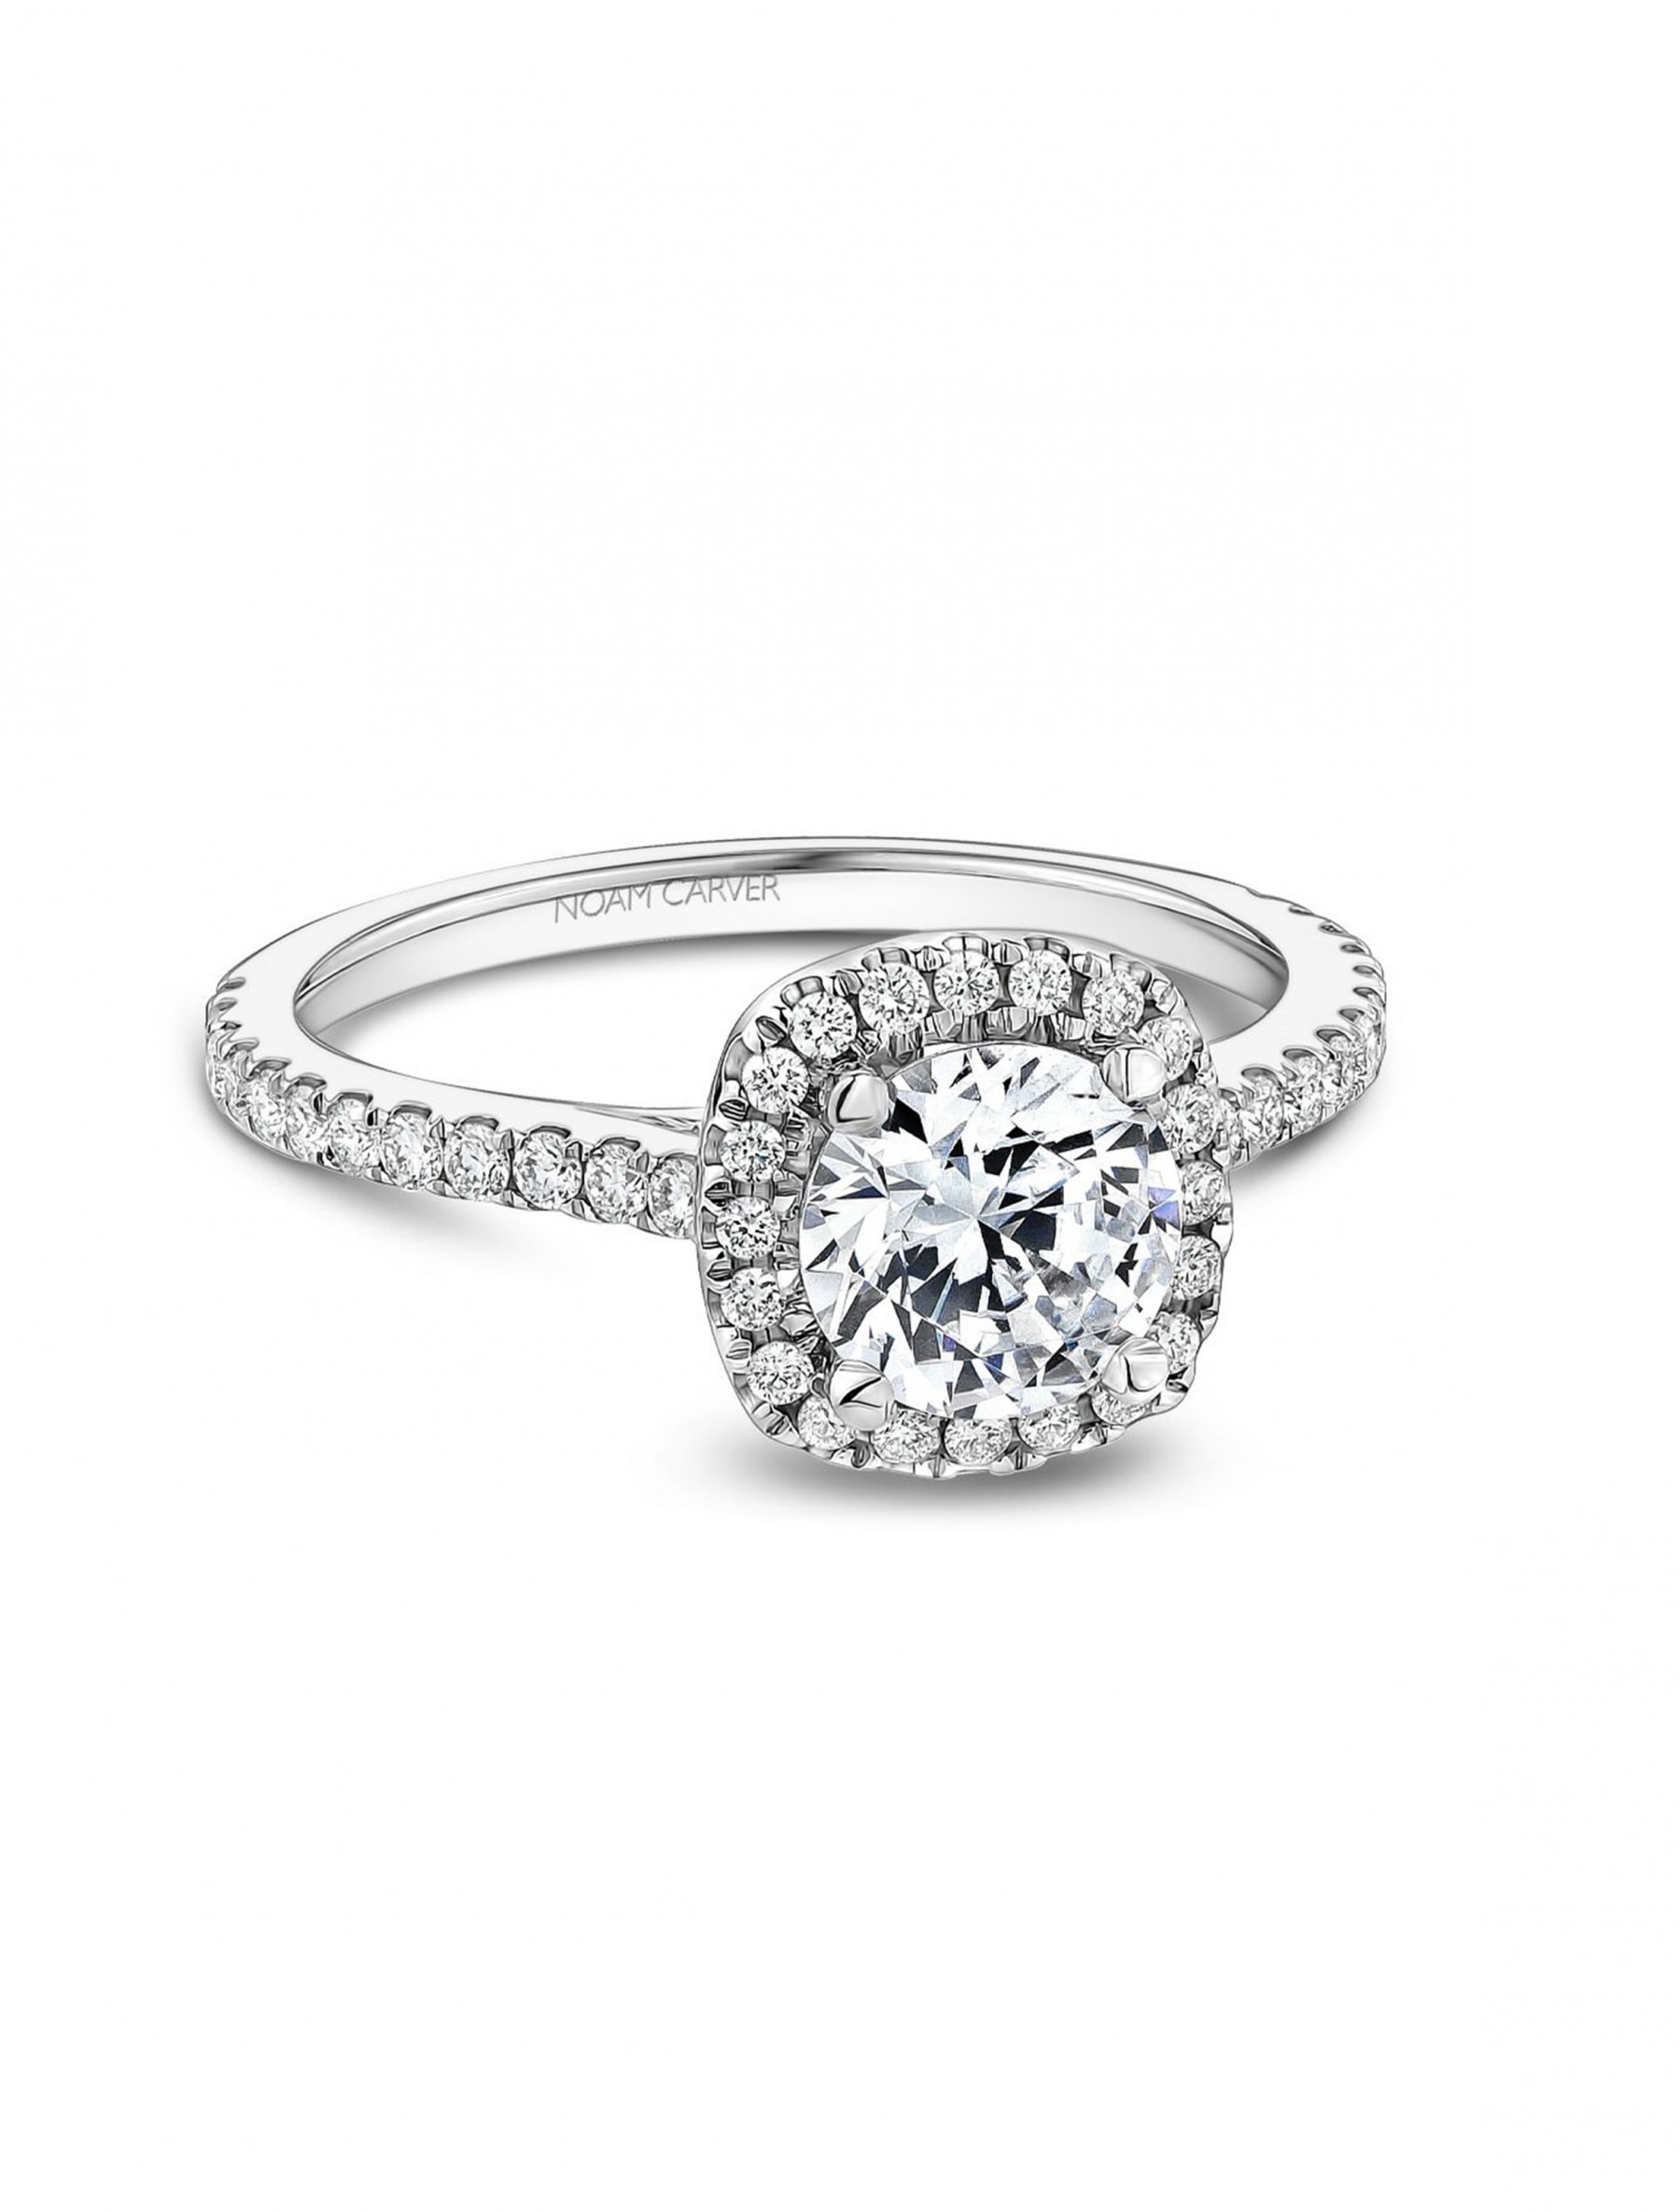 Noam Carver Round Cushion Halo Diamond Engagement Ring Setting in 18K White Gold main view